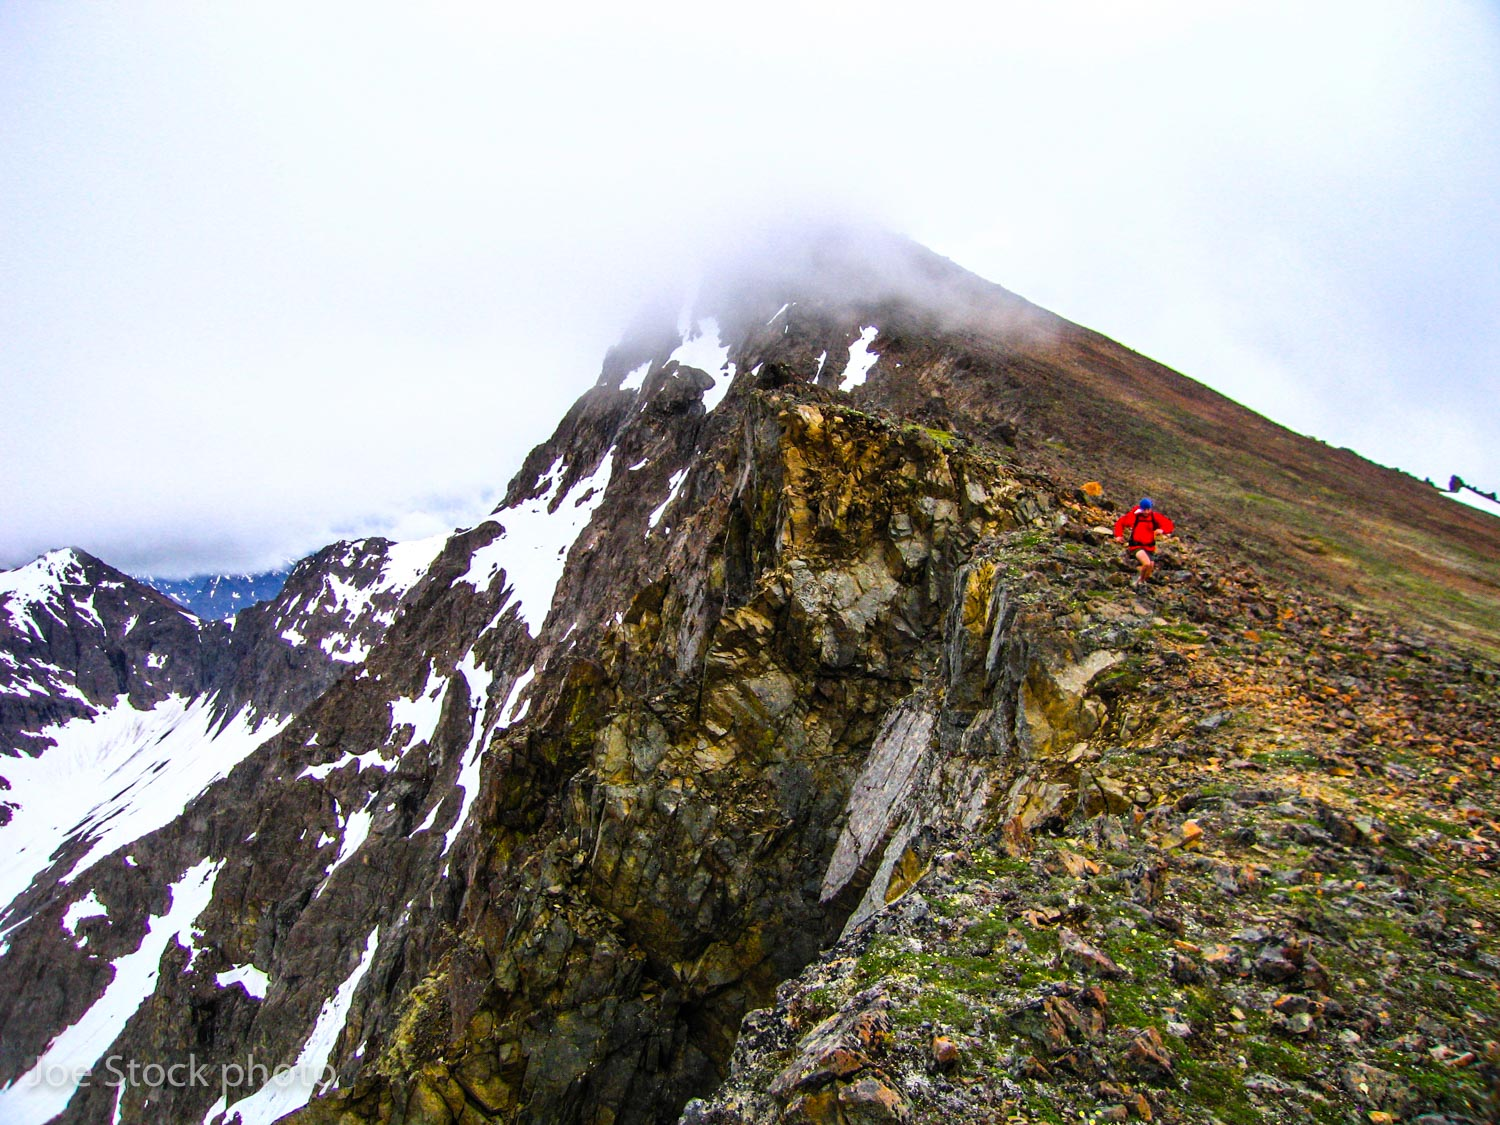 Some of the route is on open ridgelines, perfect for running. Andrew McCarthy on a route finding run in June.